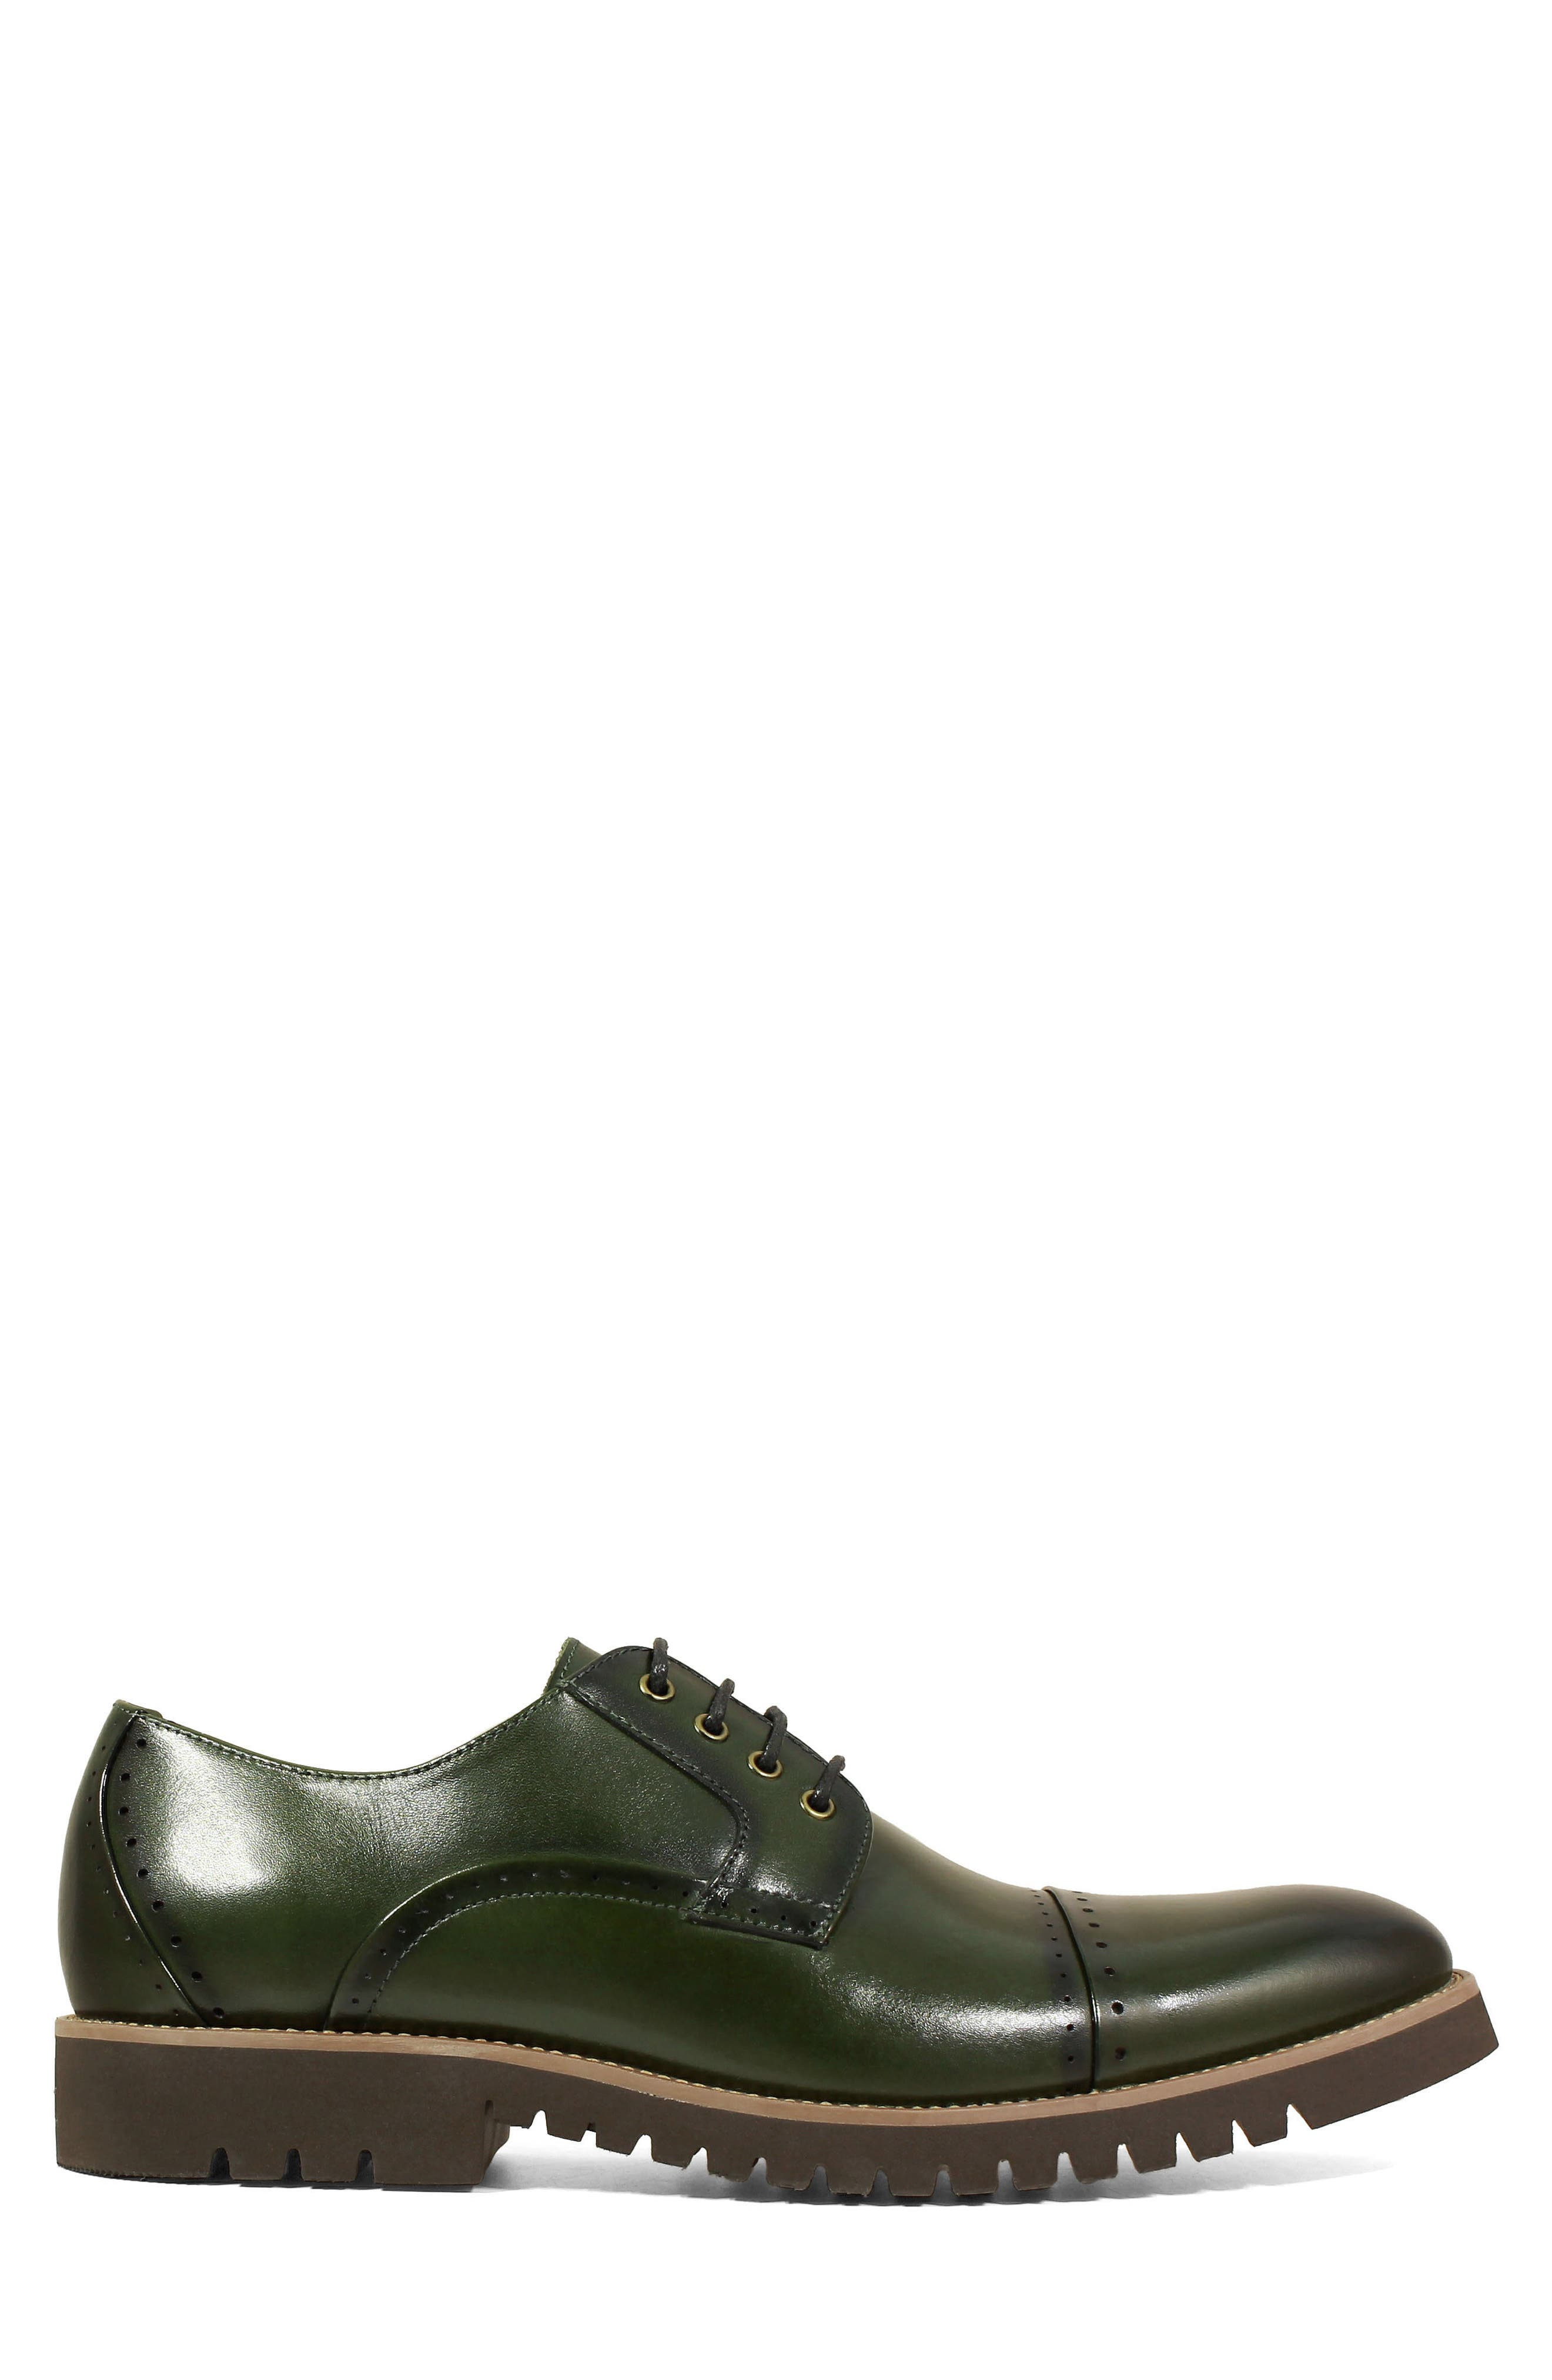 Barcliff Cap Toe Derby,                             Alternate thumbnail 3, color,                             CARGO GREEN LEATHER